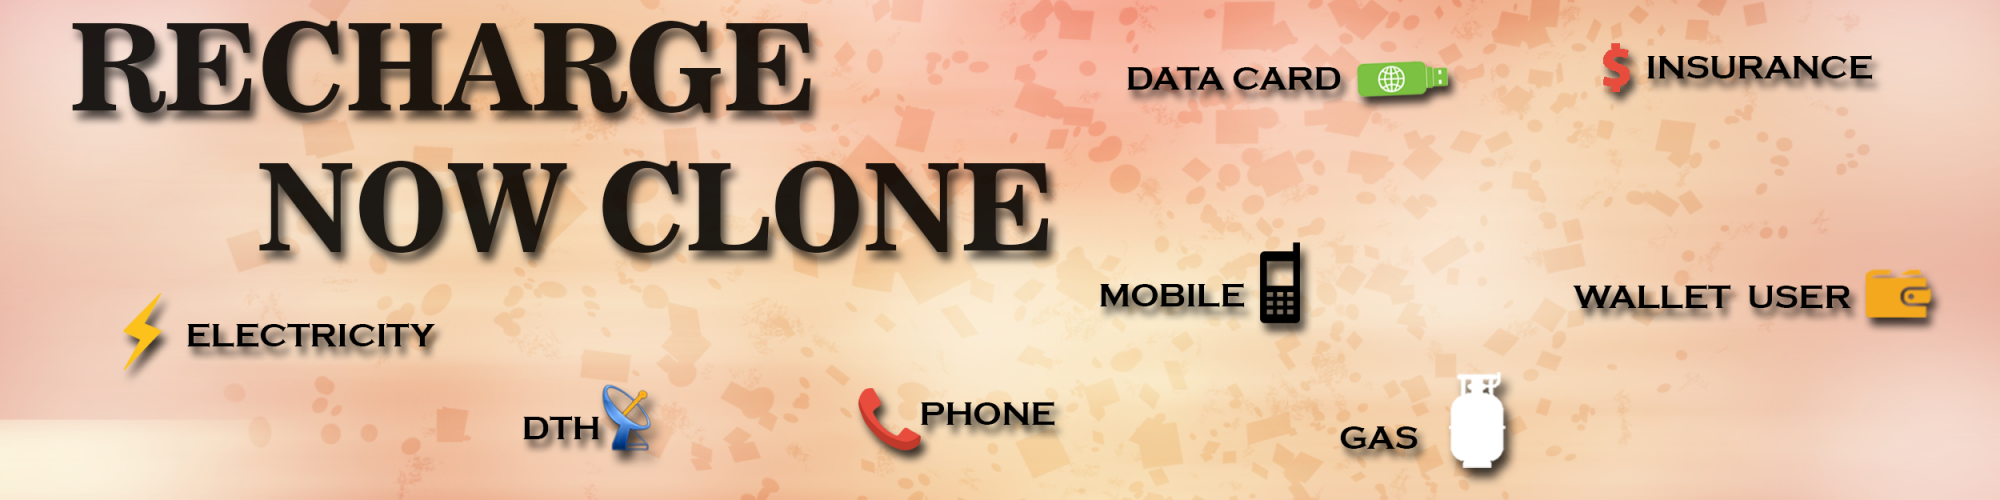 doditsolutions-recharge- now-clone-banner